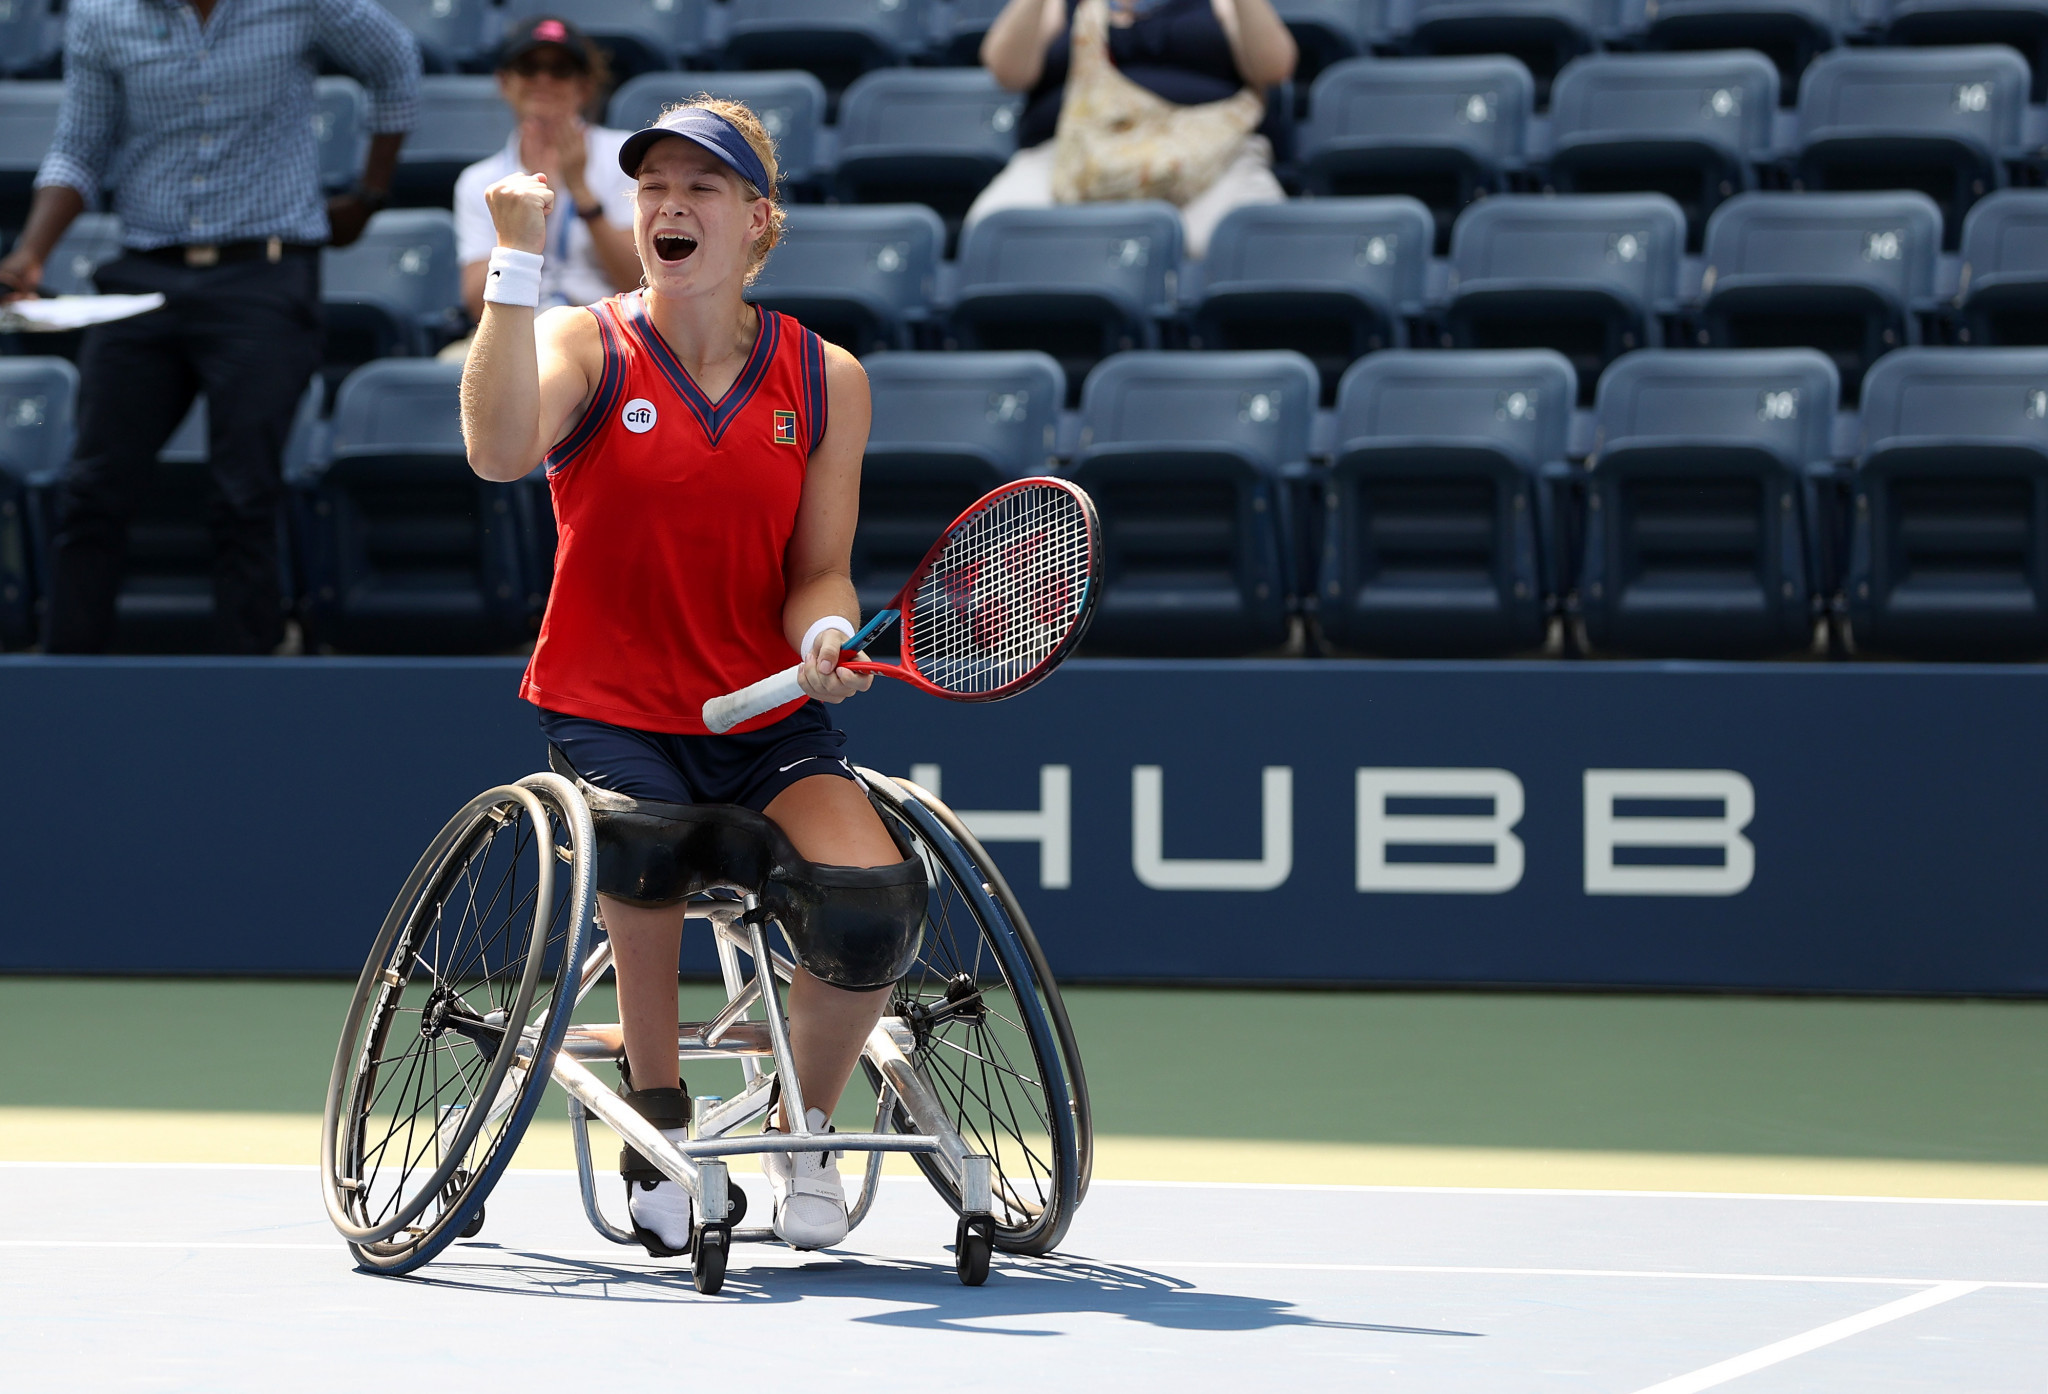 Dutch dominate on second day of Wheelchair Tennis World Team Cup